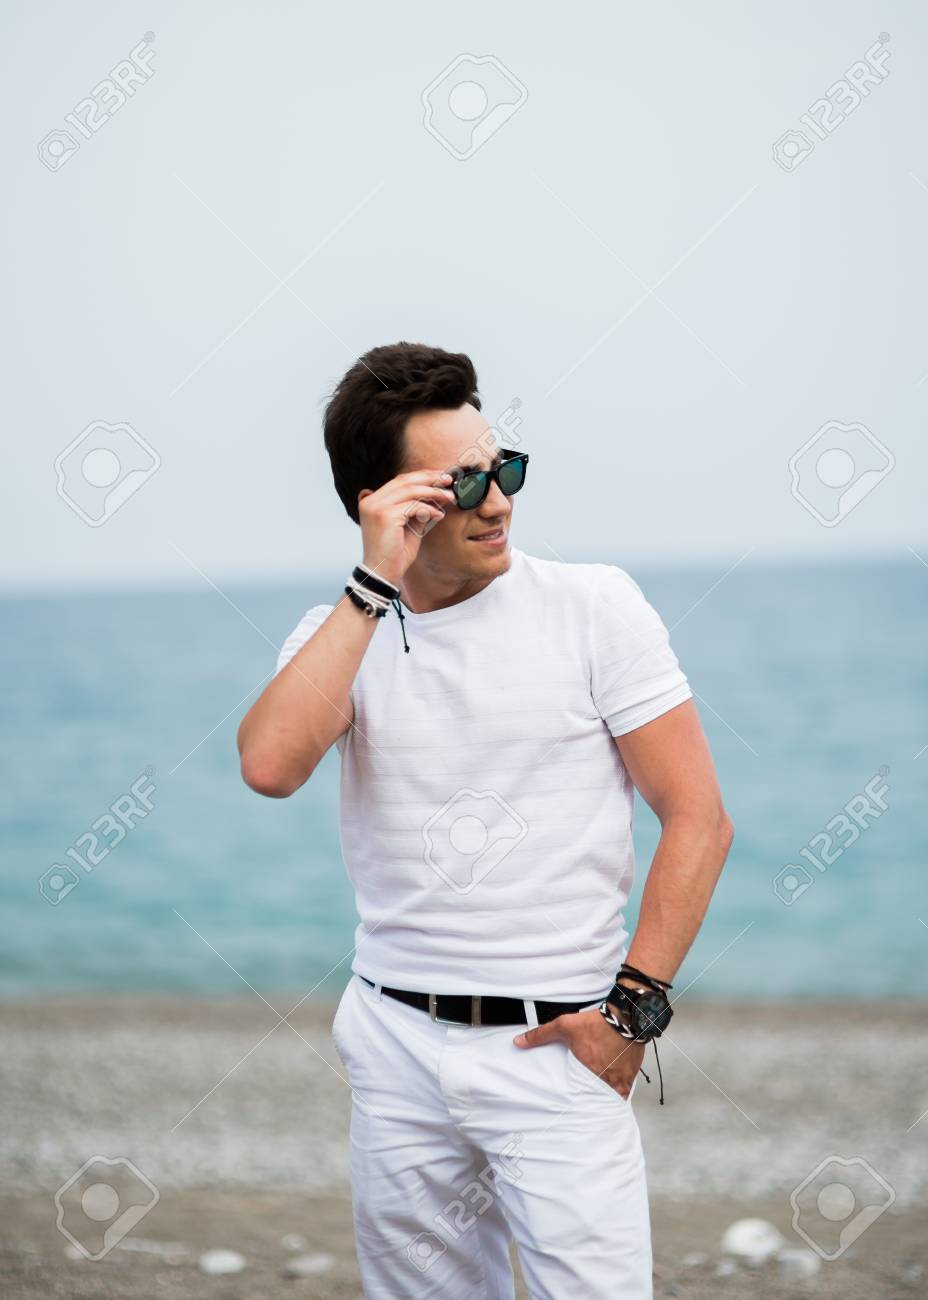 e80bd317d882 Portrait of young man in sunglasses smiling on the beach Stock Photo -  87534373